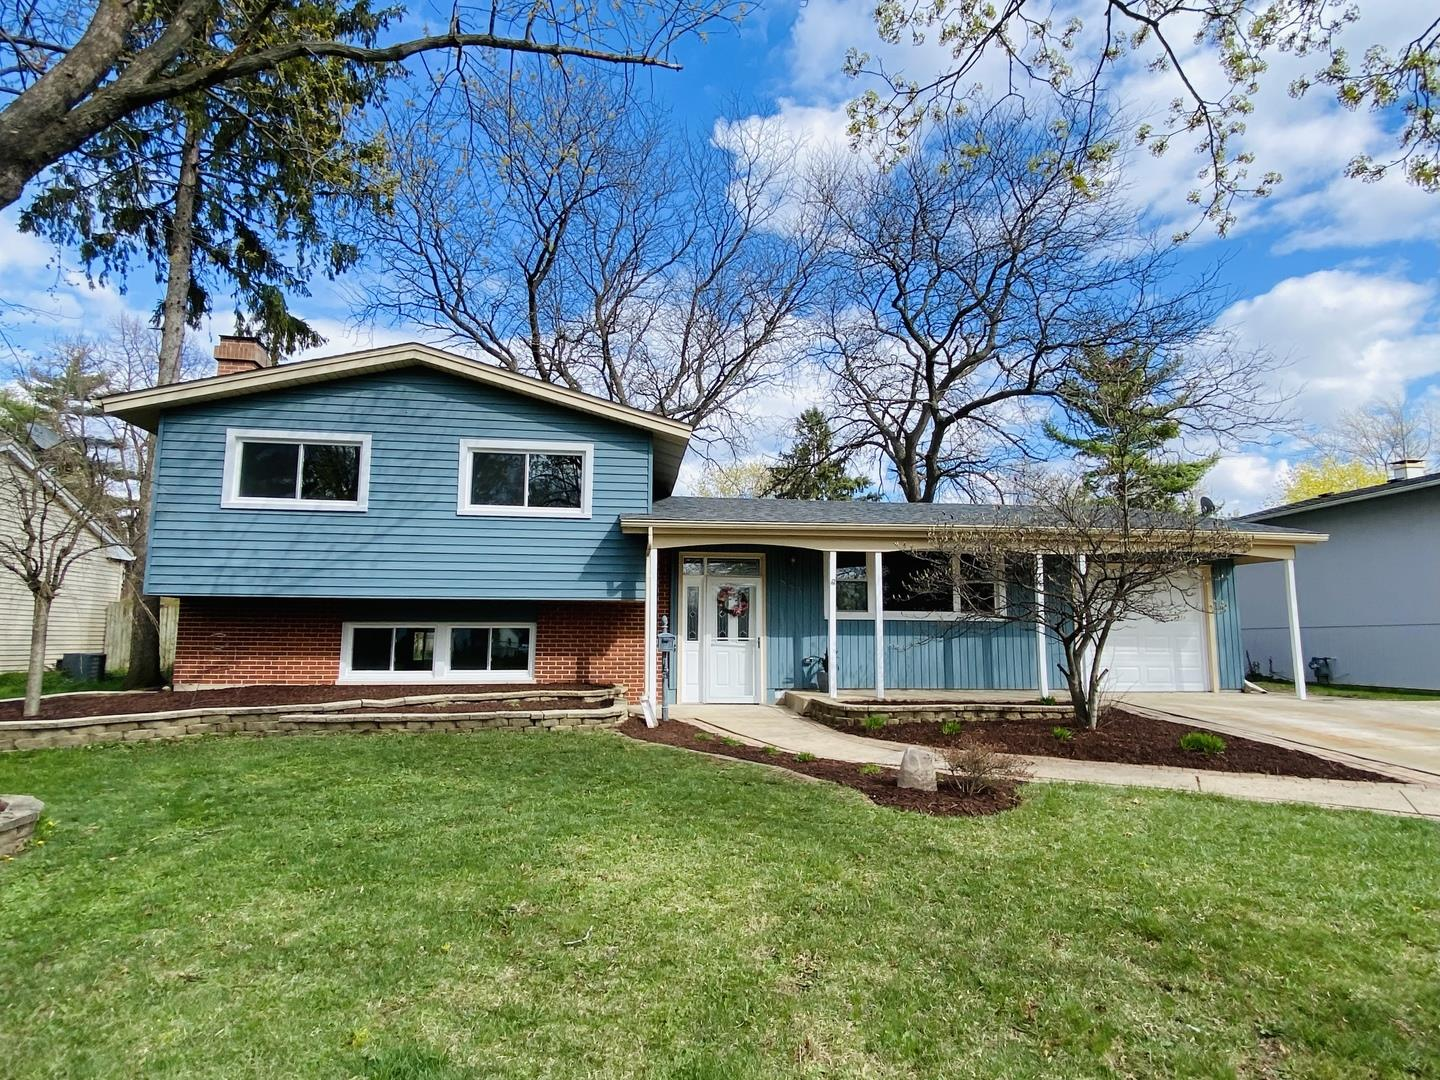 885 Cambridge Lane, Crystal Lake, IL 60014 - #: 11055429